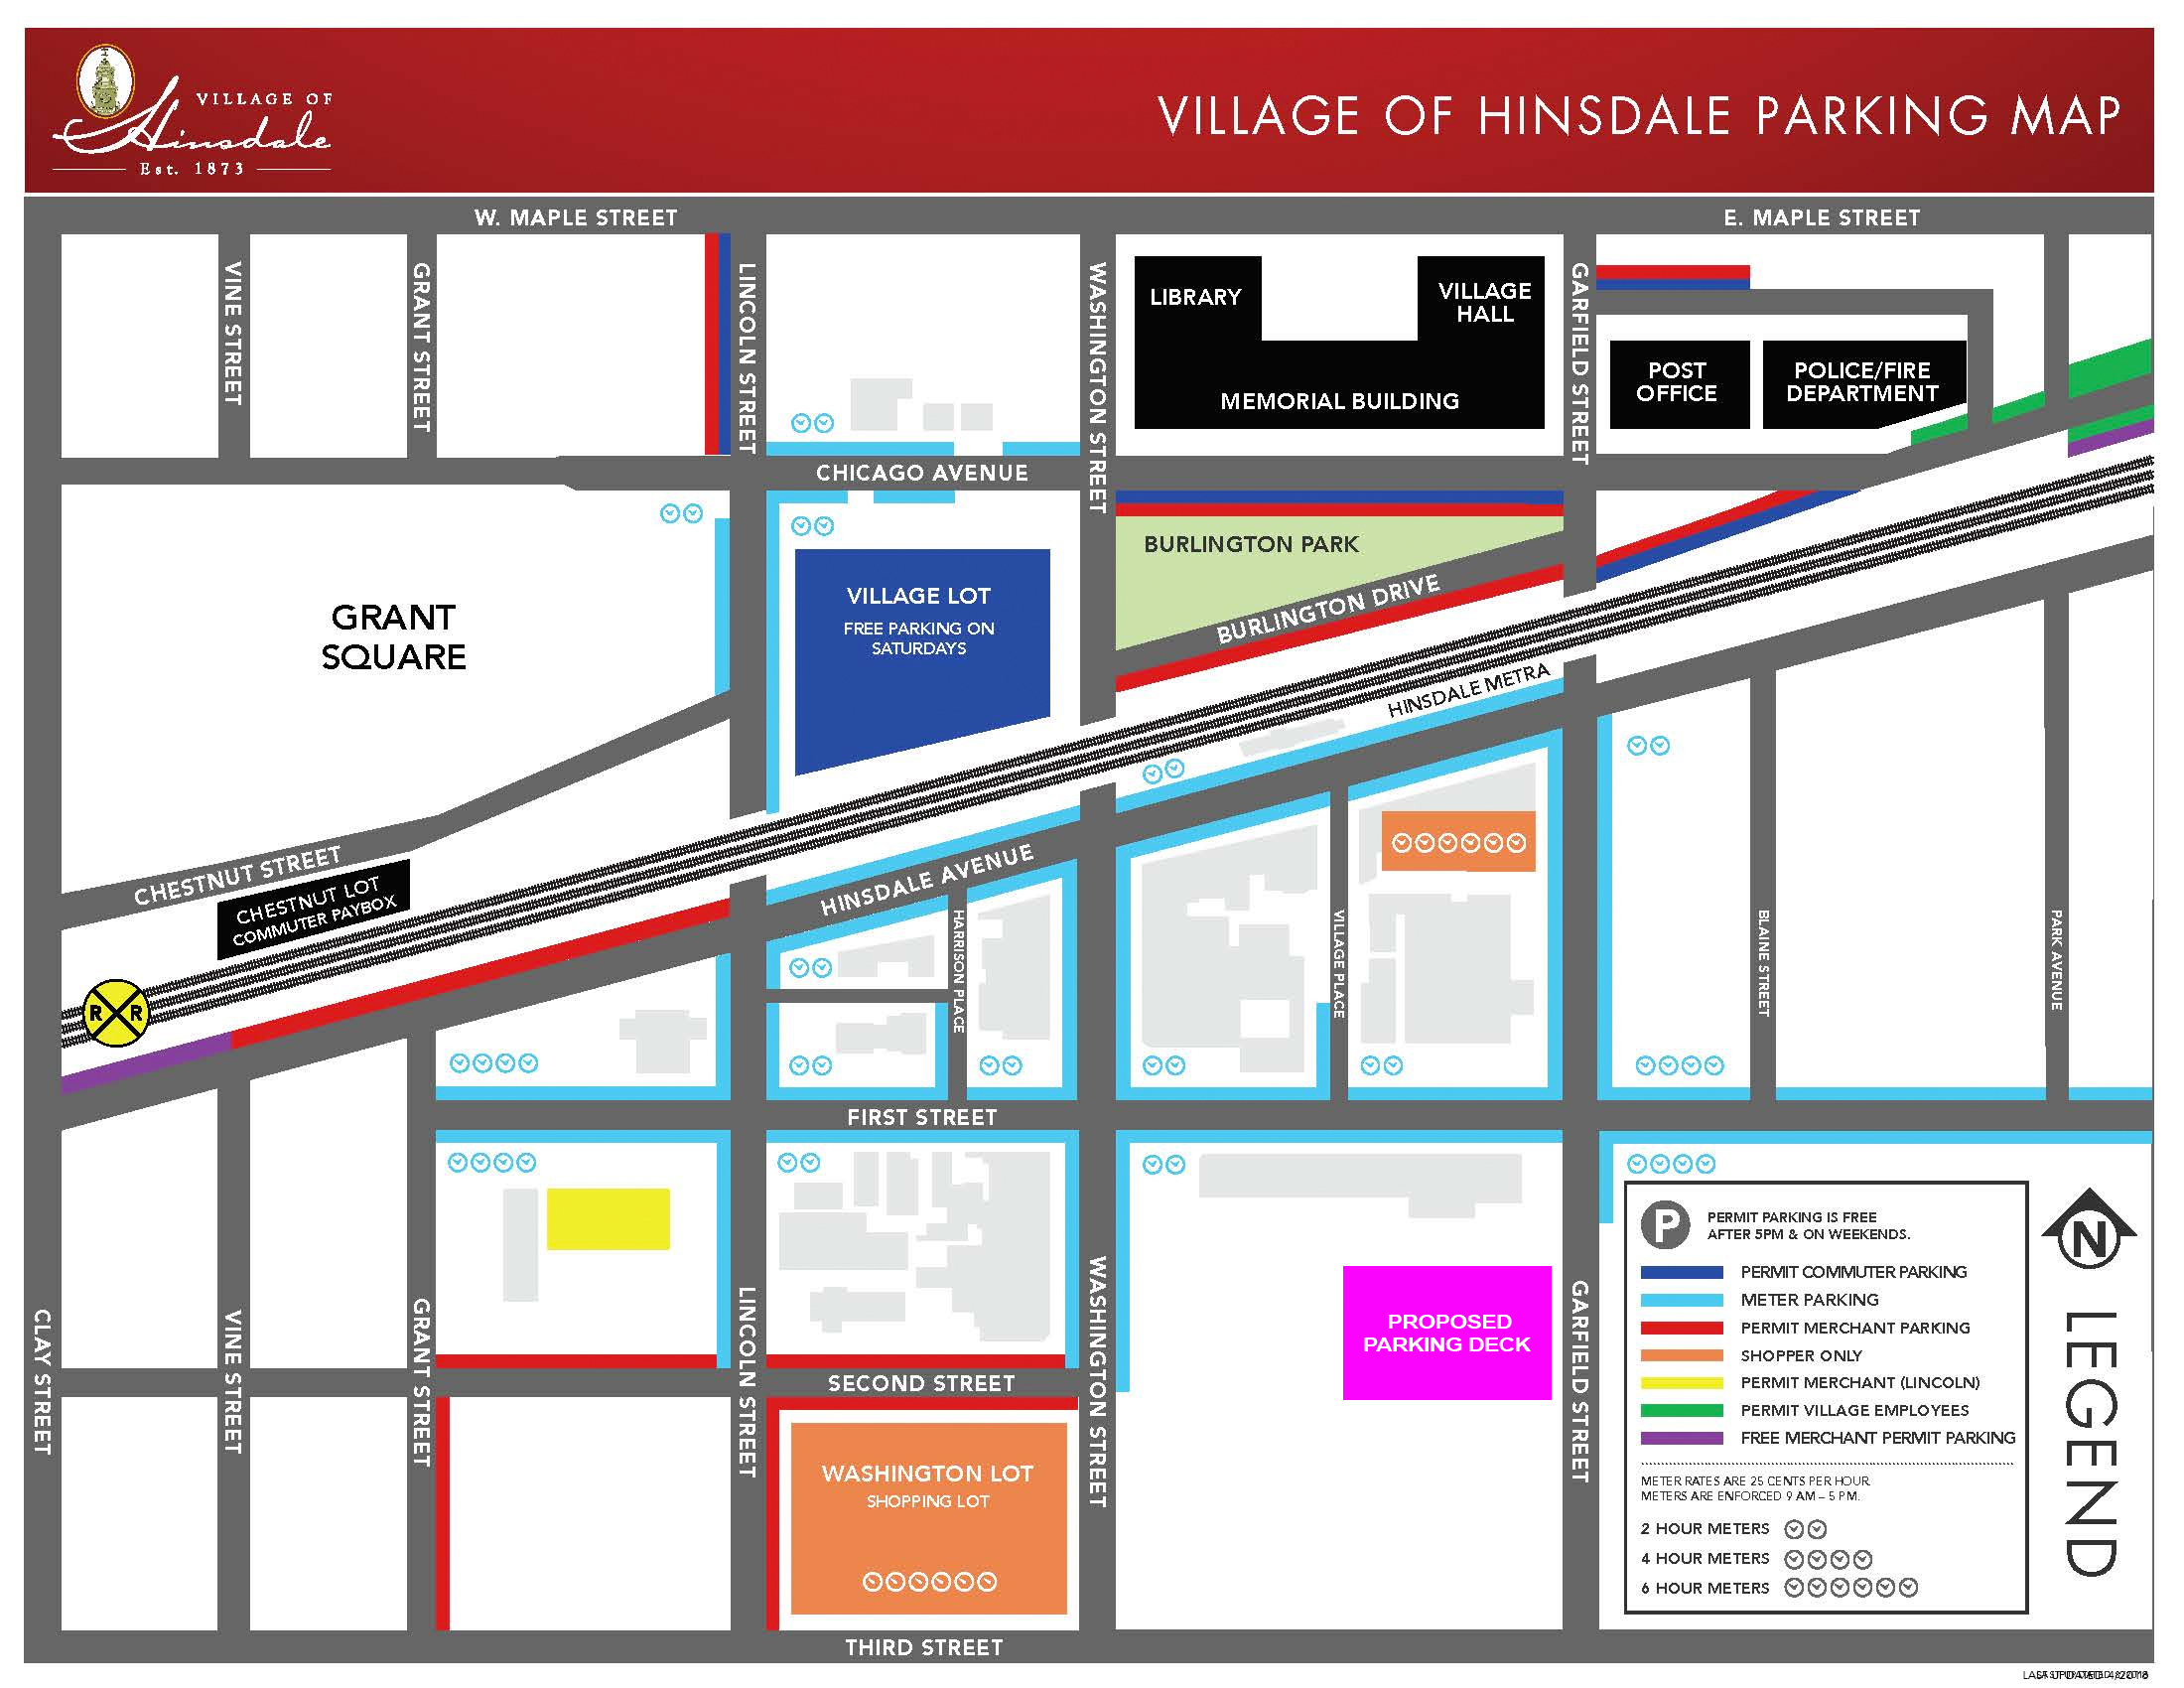 Hinsdale Parking Map